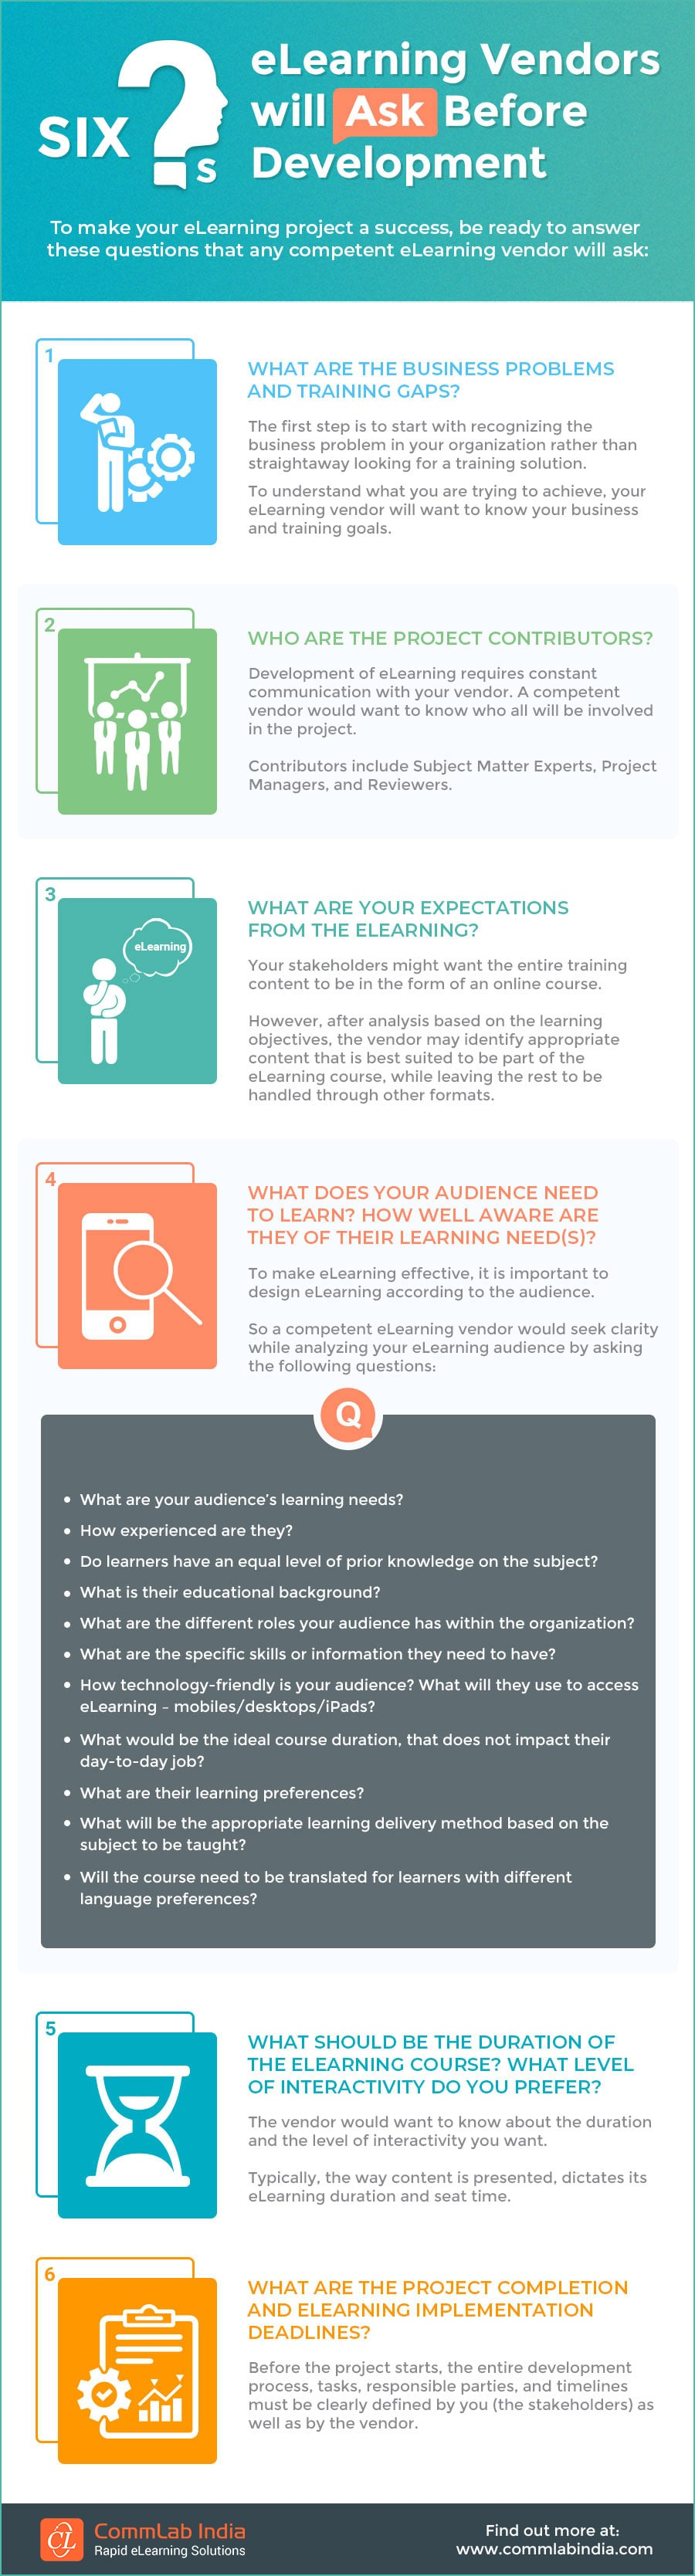 6 Questions E-learning Vendors Will Ask Before Development [Infographic]